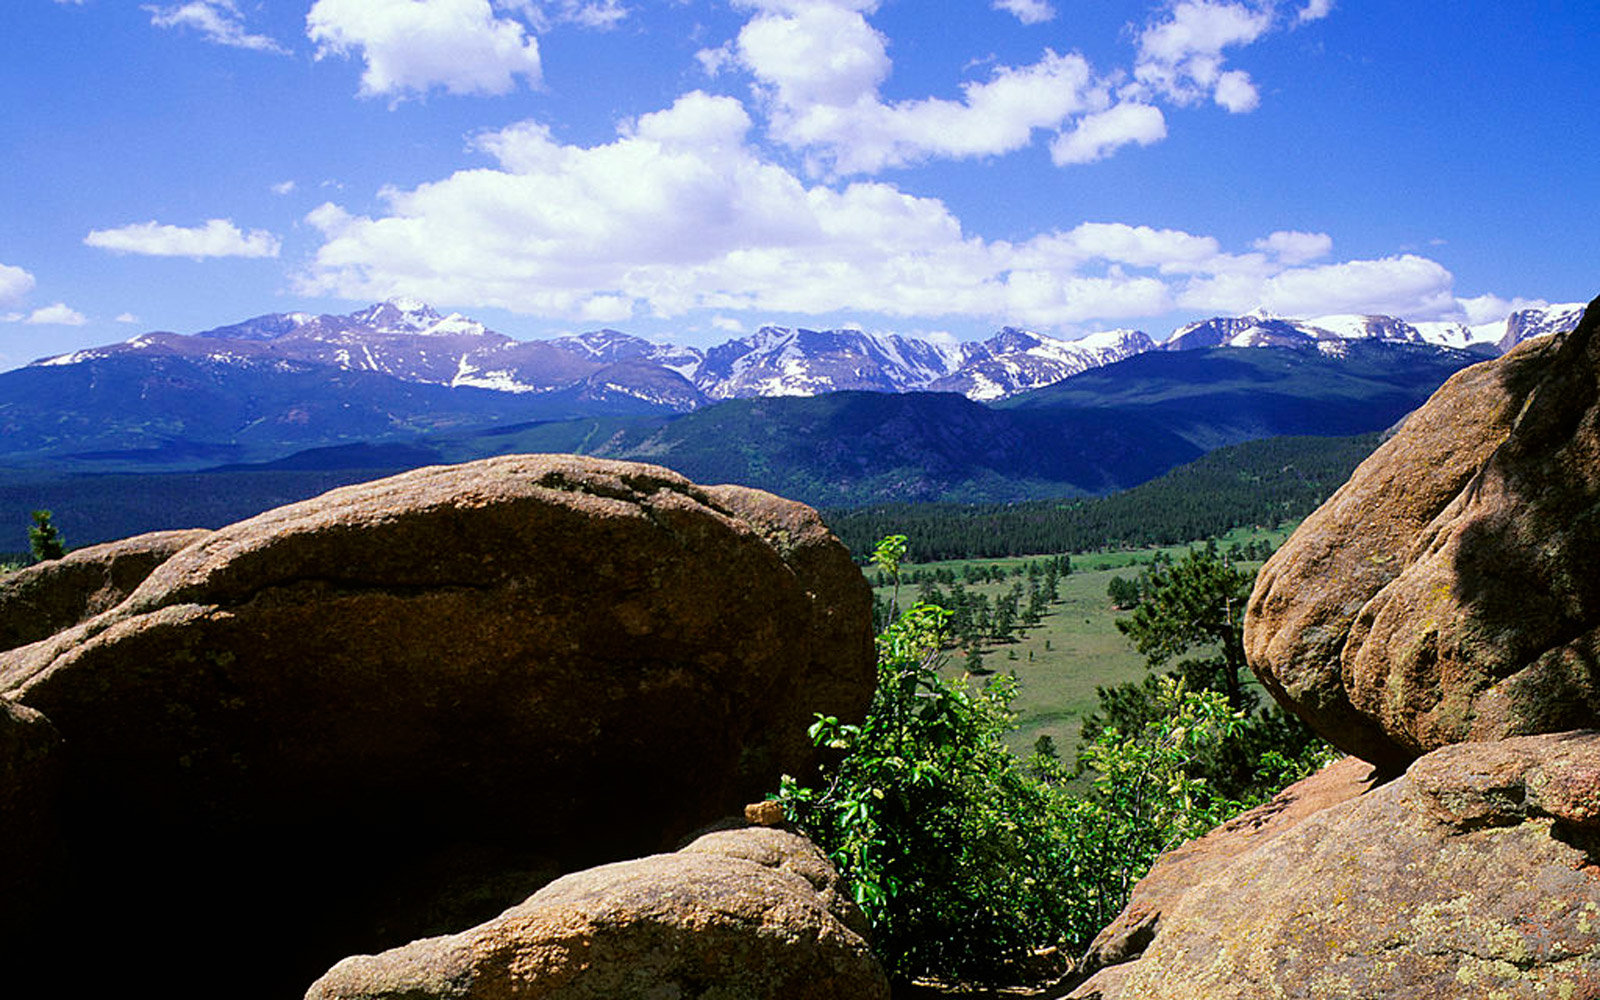 UNITED STATES - 1996/07/28: USA, Colorado, Rocky Mountains National Park, View Of Longs Peak. (Photo by Wolfgang Kaehler/LightRocket via Getty Images)